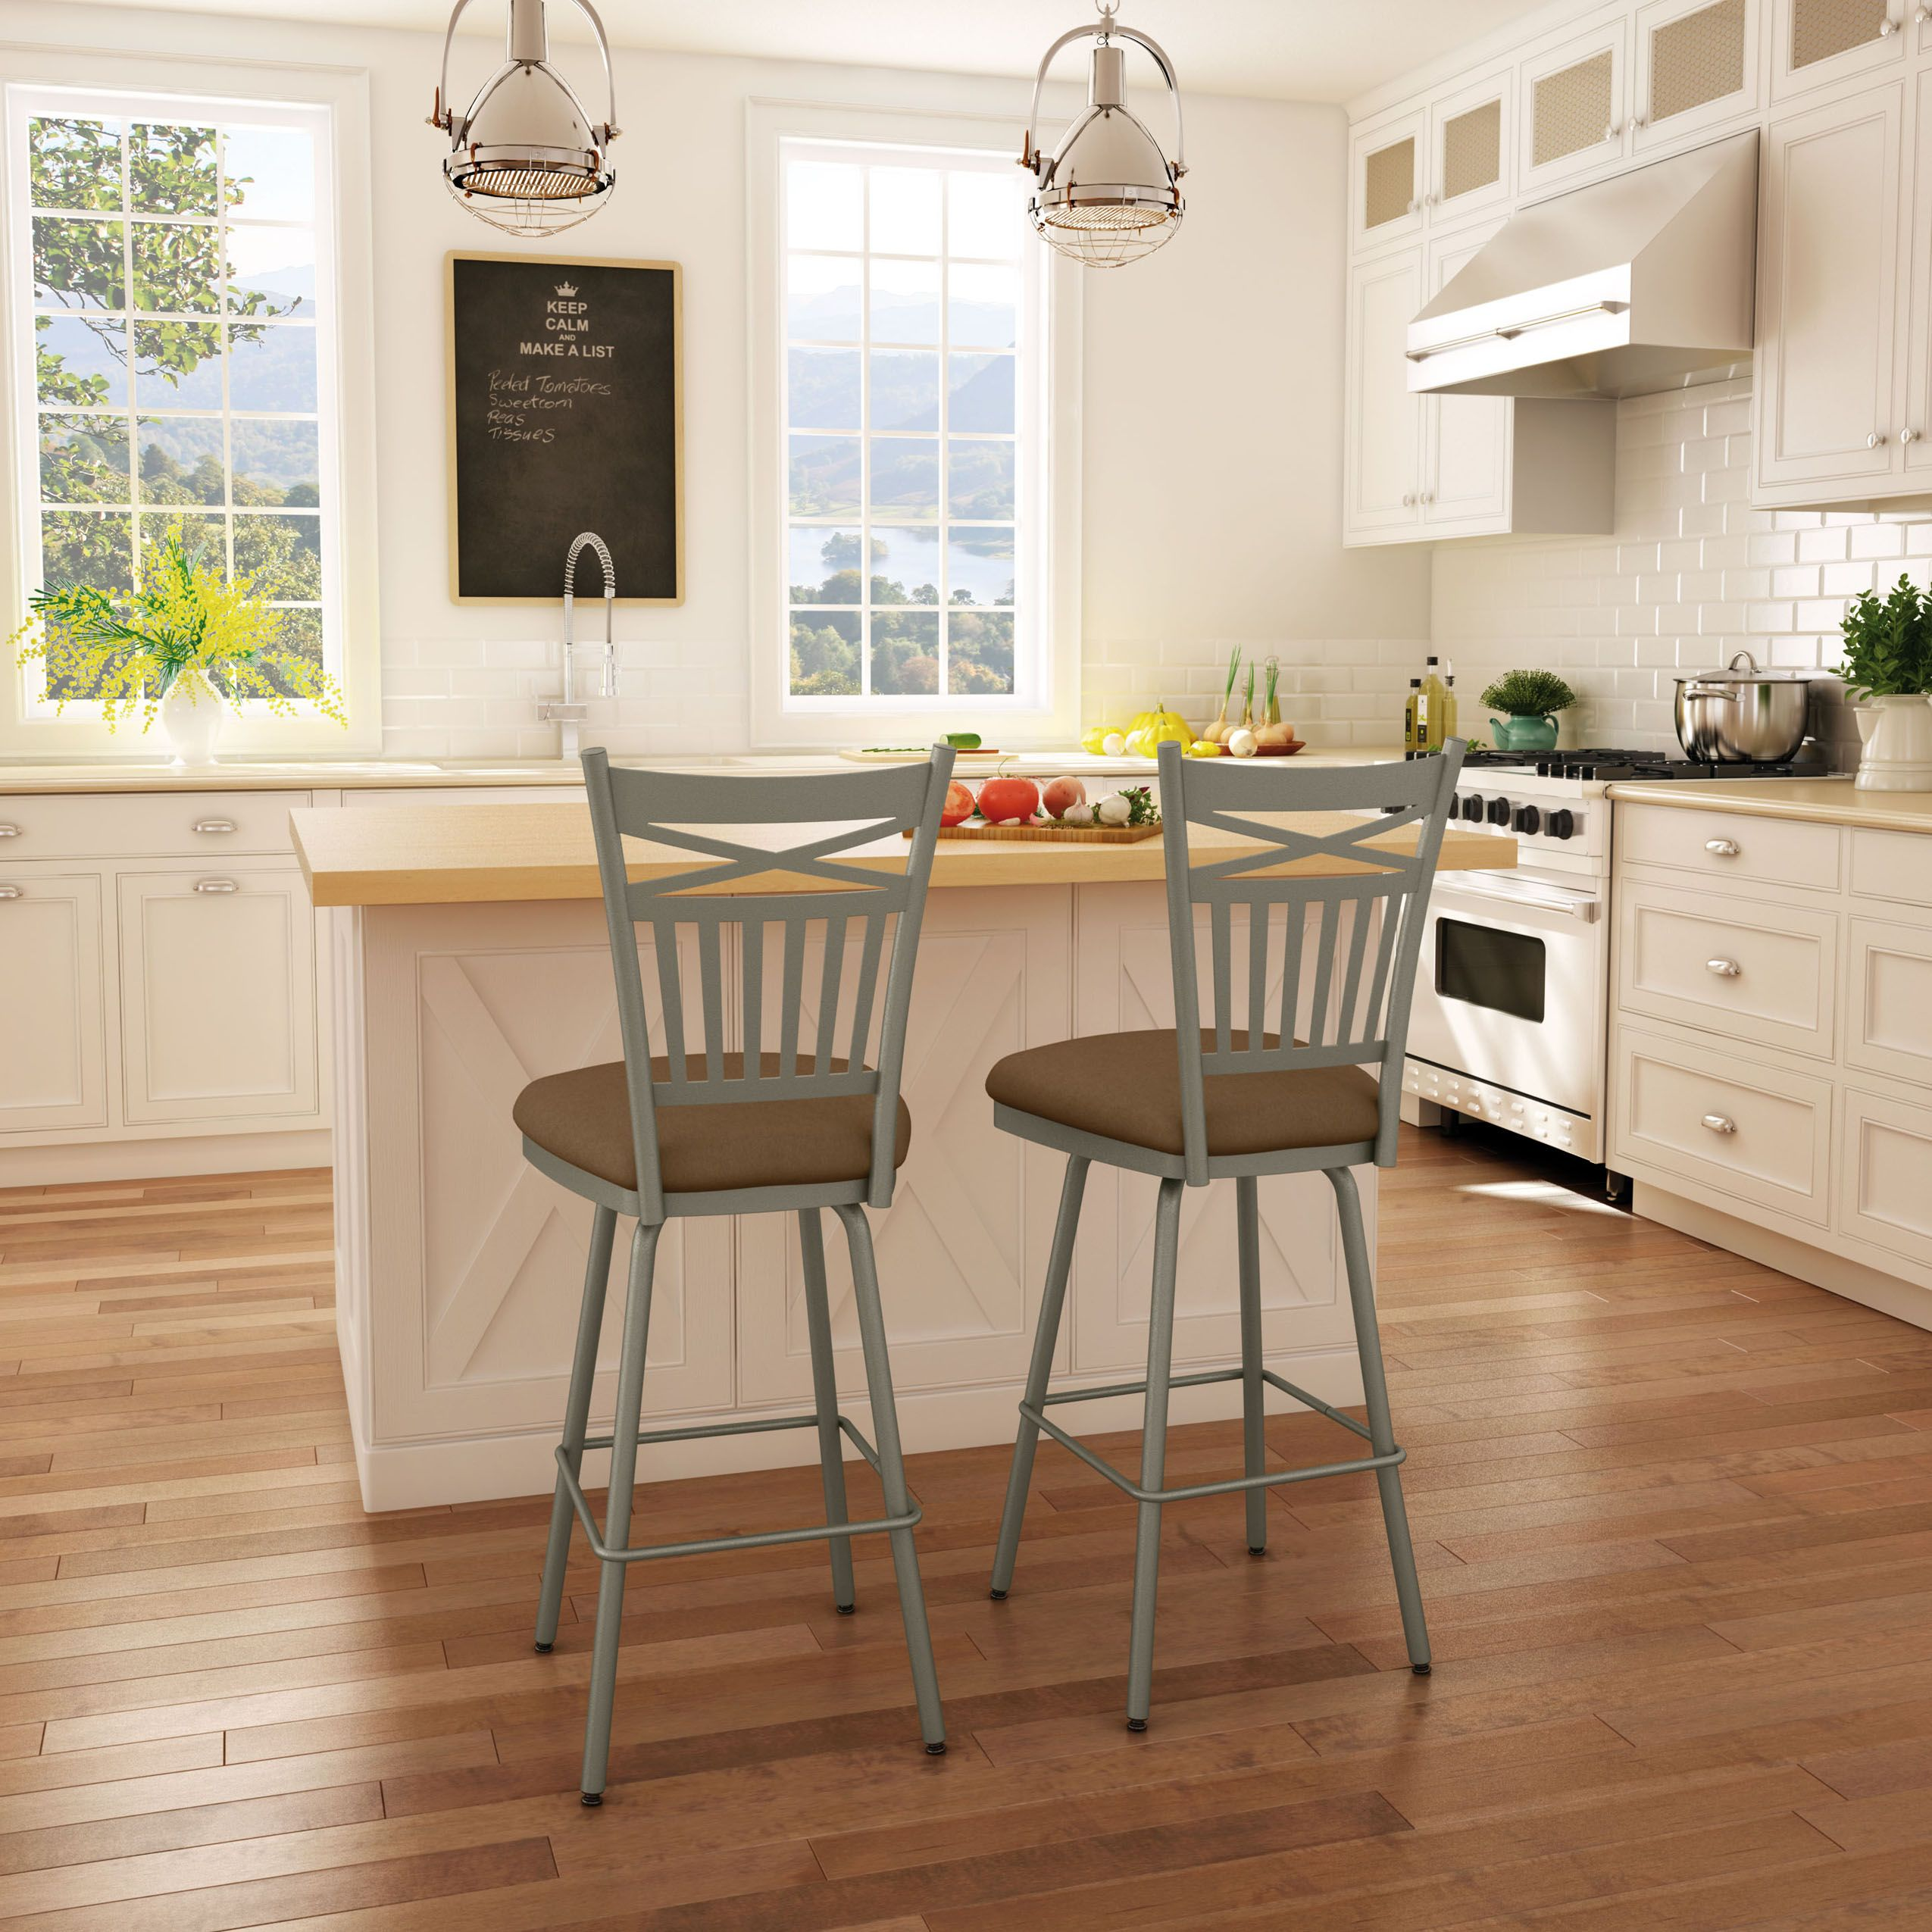 AMISCO   Garden Stool (41488)   Furniture   Kitchen   Countryside  Collection   Traditional